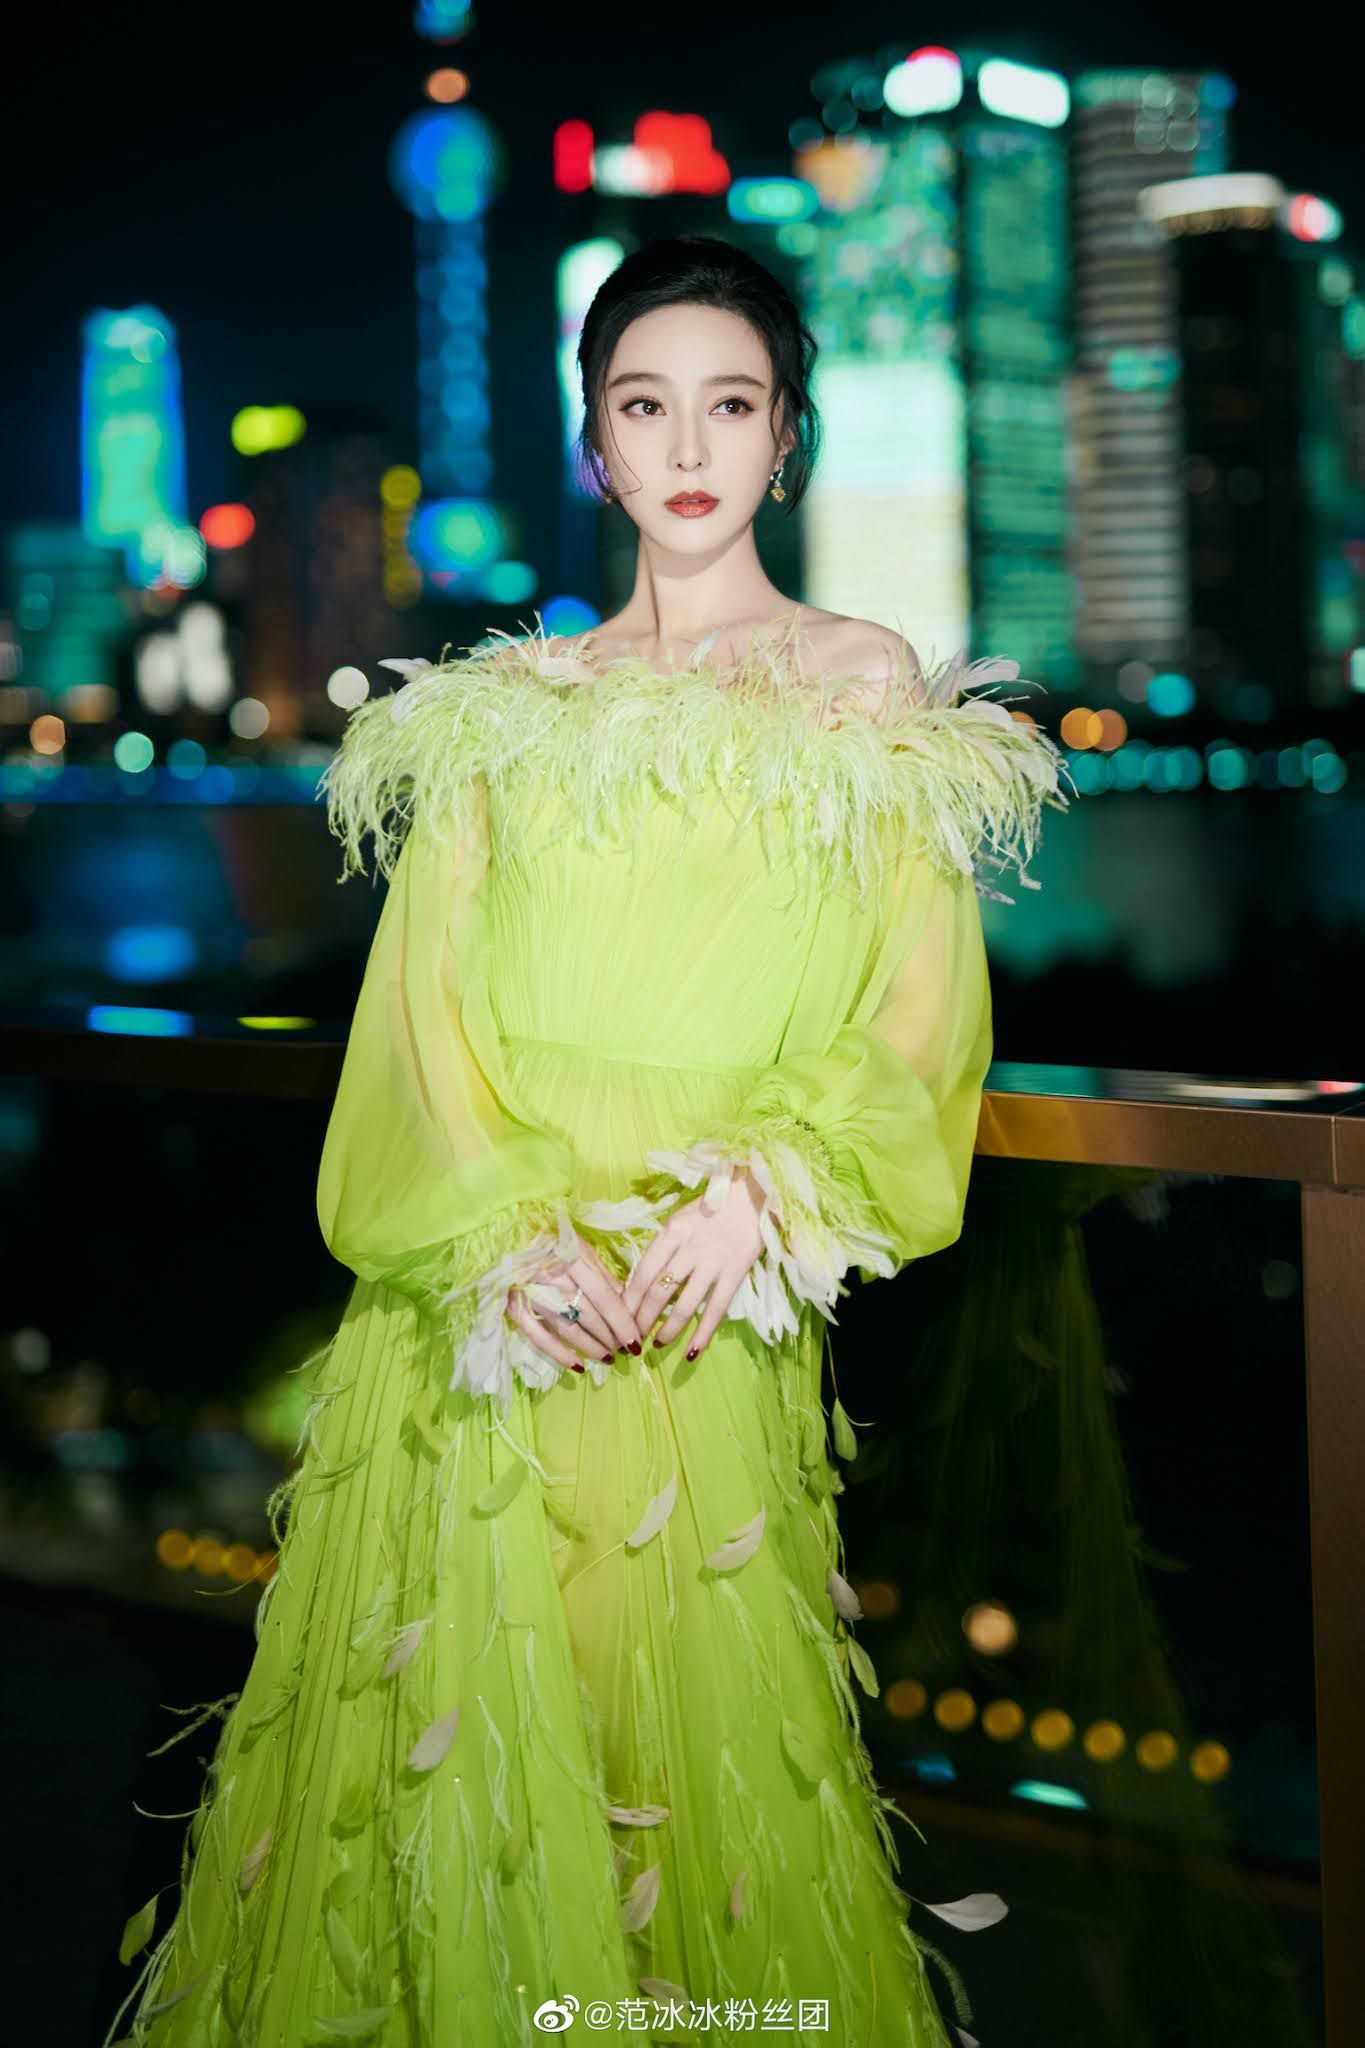 Jin Chen poses for photo shoot   China Entertainment News